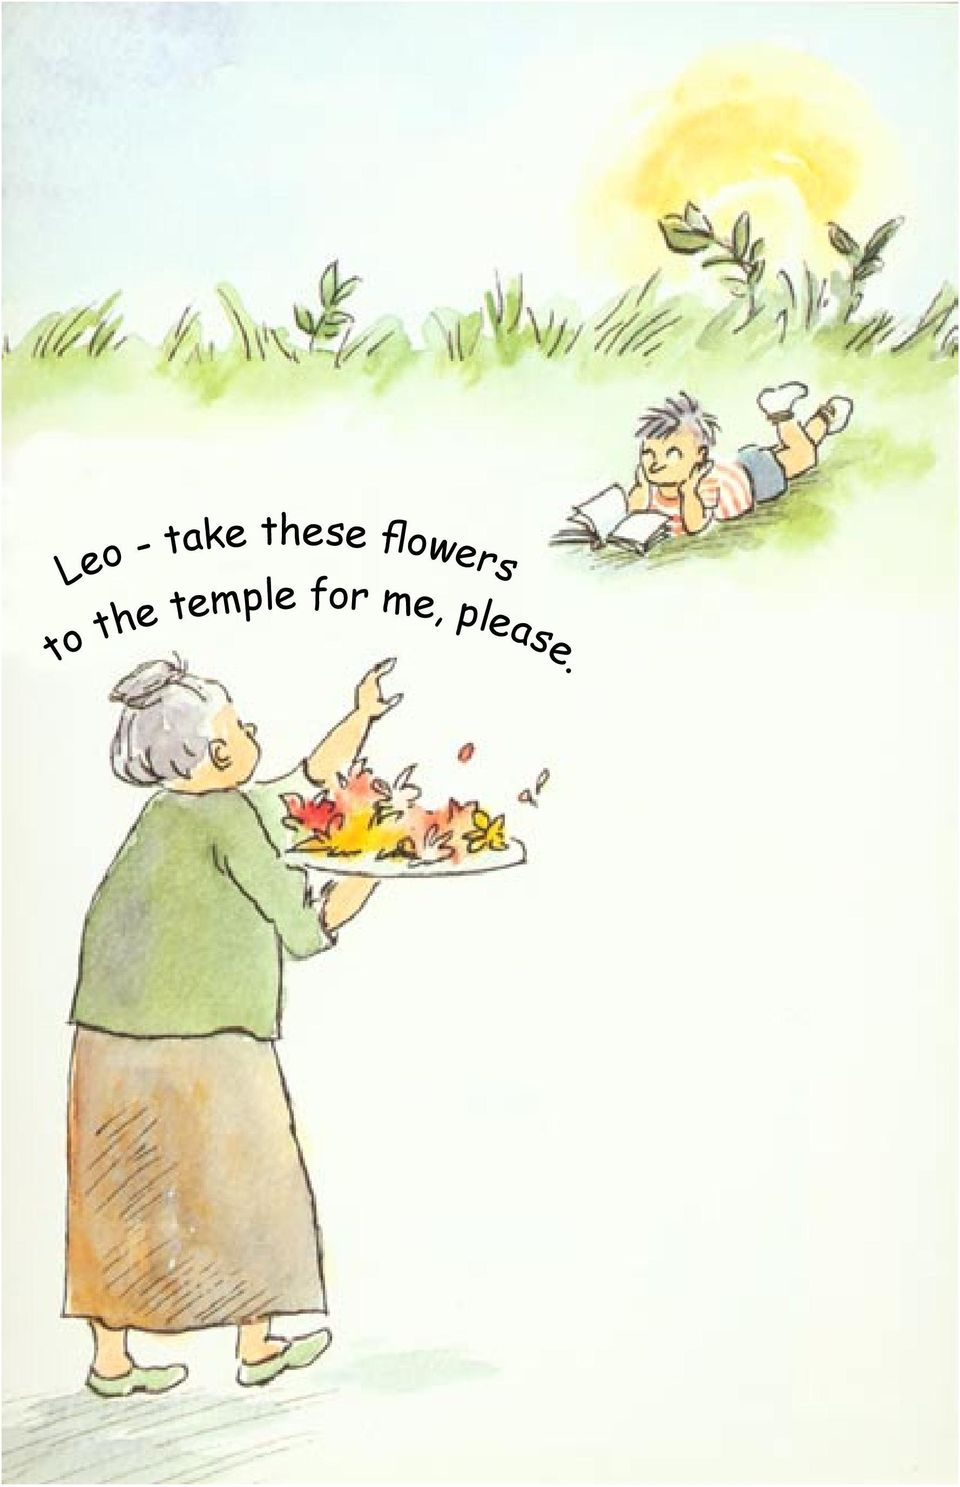 to the temple